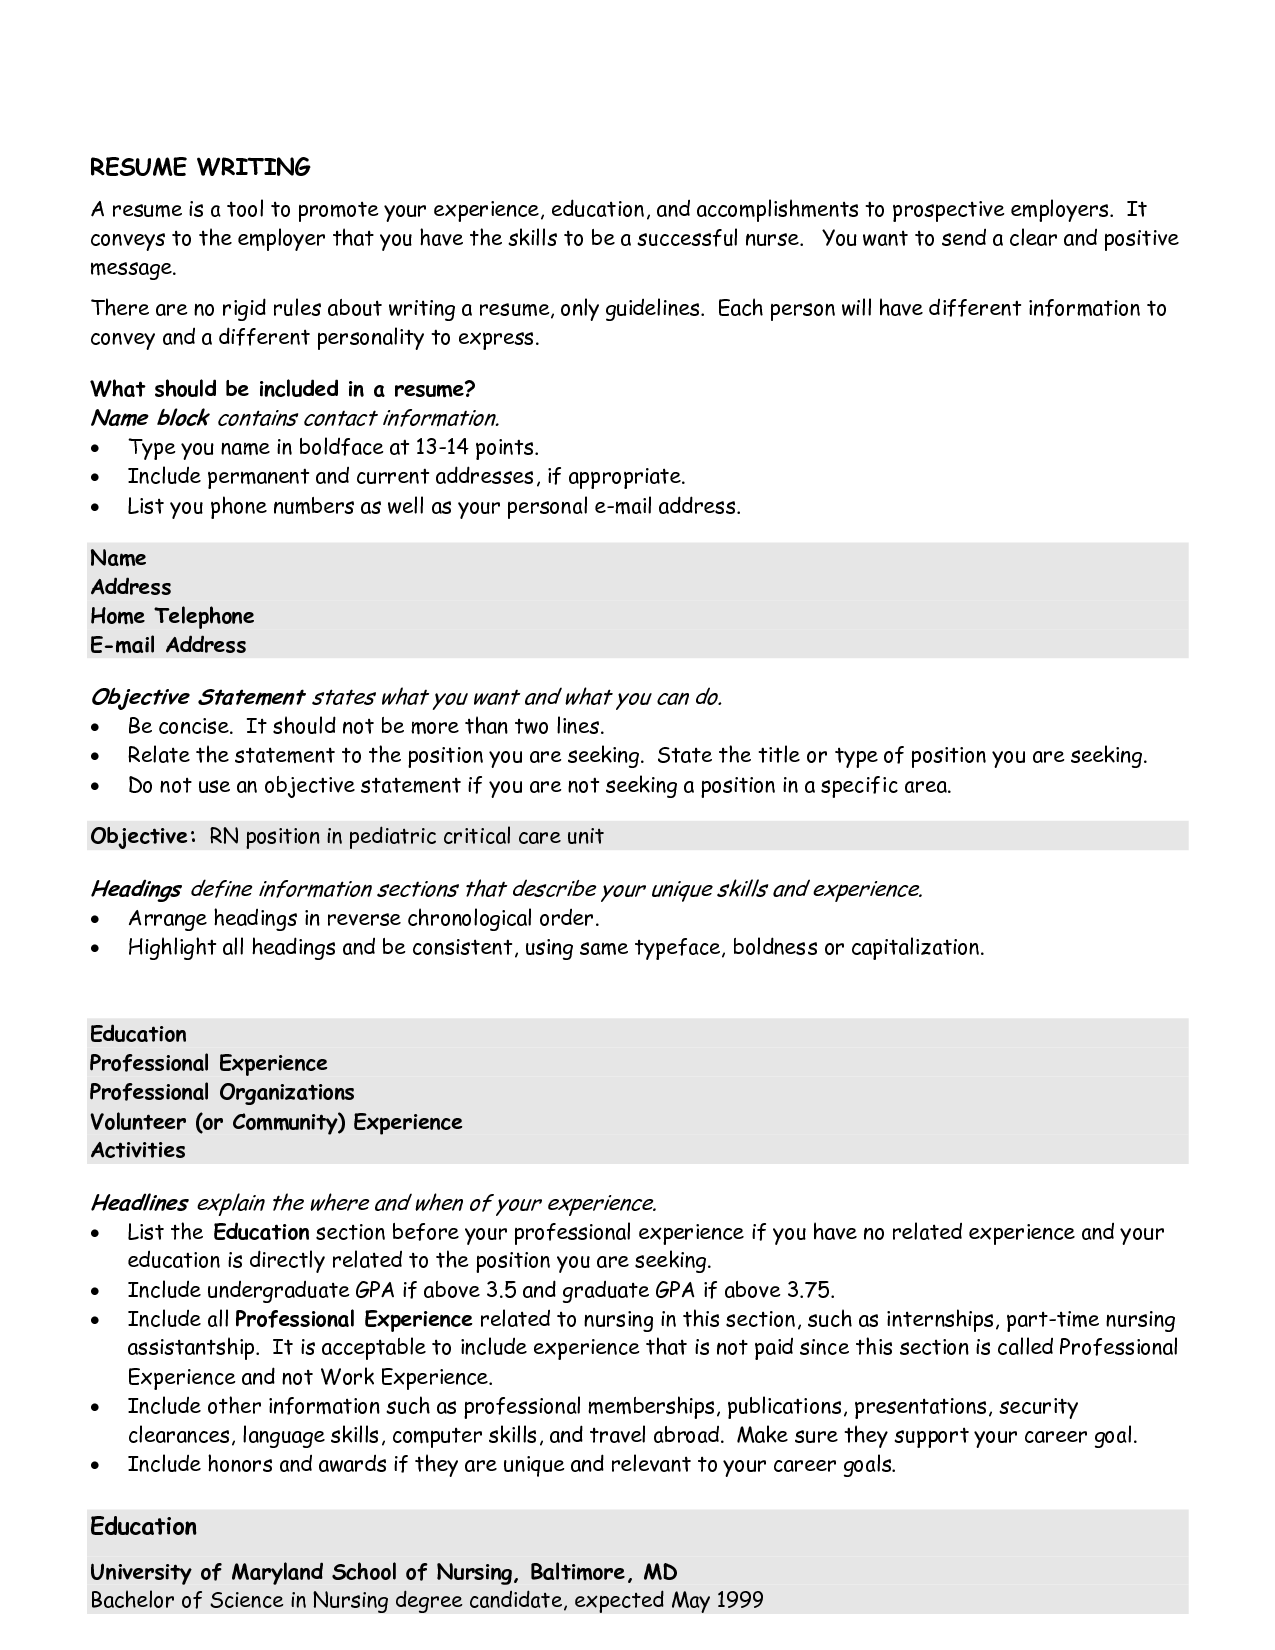 Customer service statement for resume